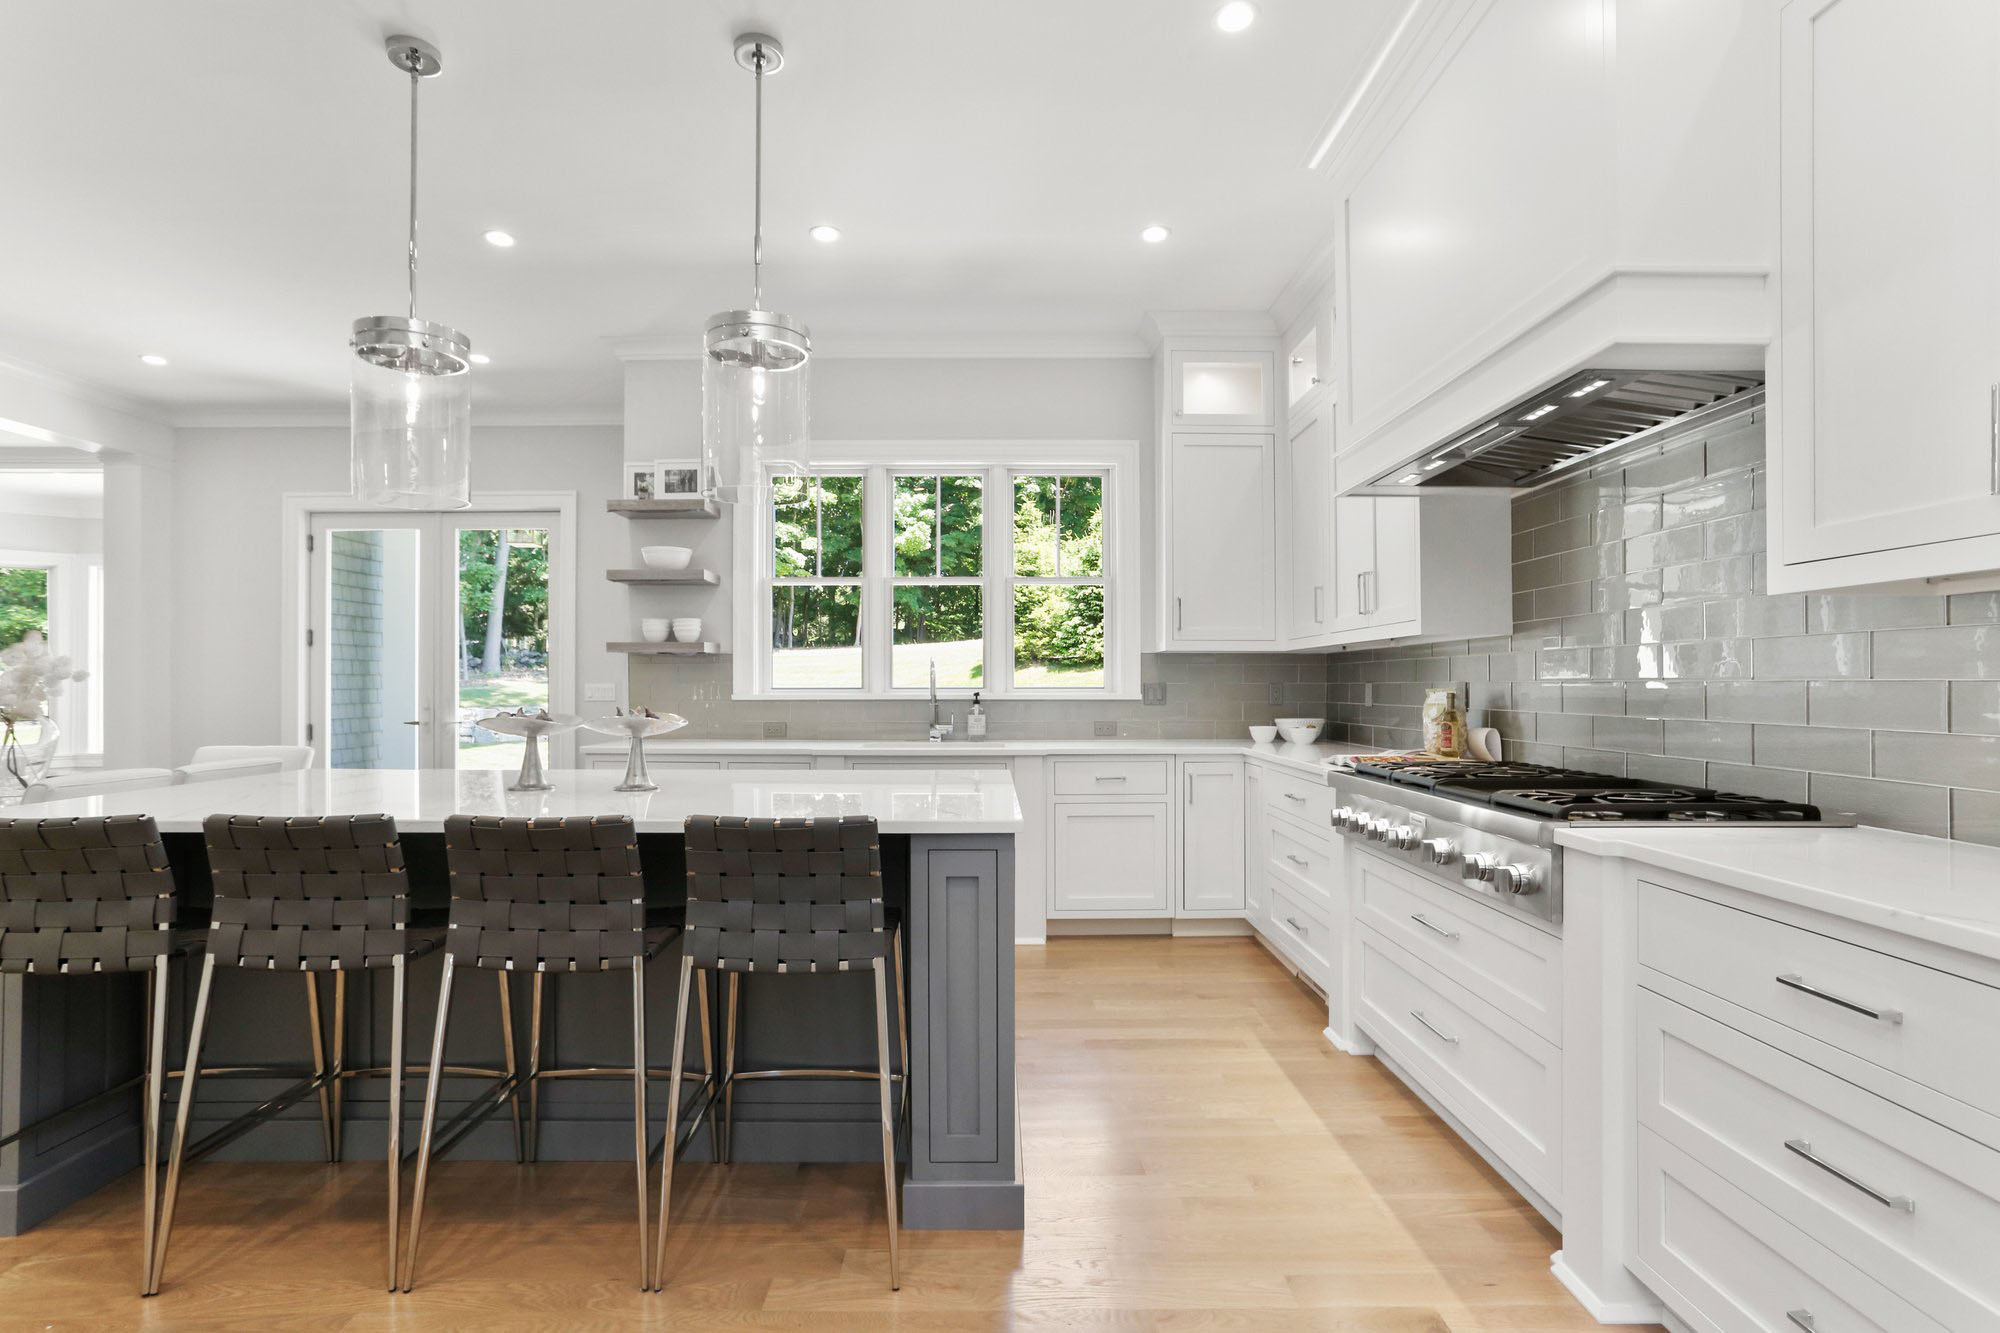 White shaker style cabinets with a medium gray island. Gray glass tile backsplash with marble quartz countertop.